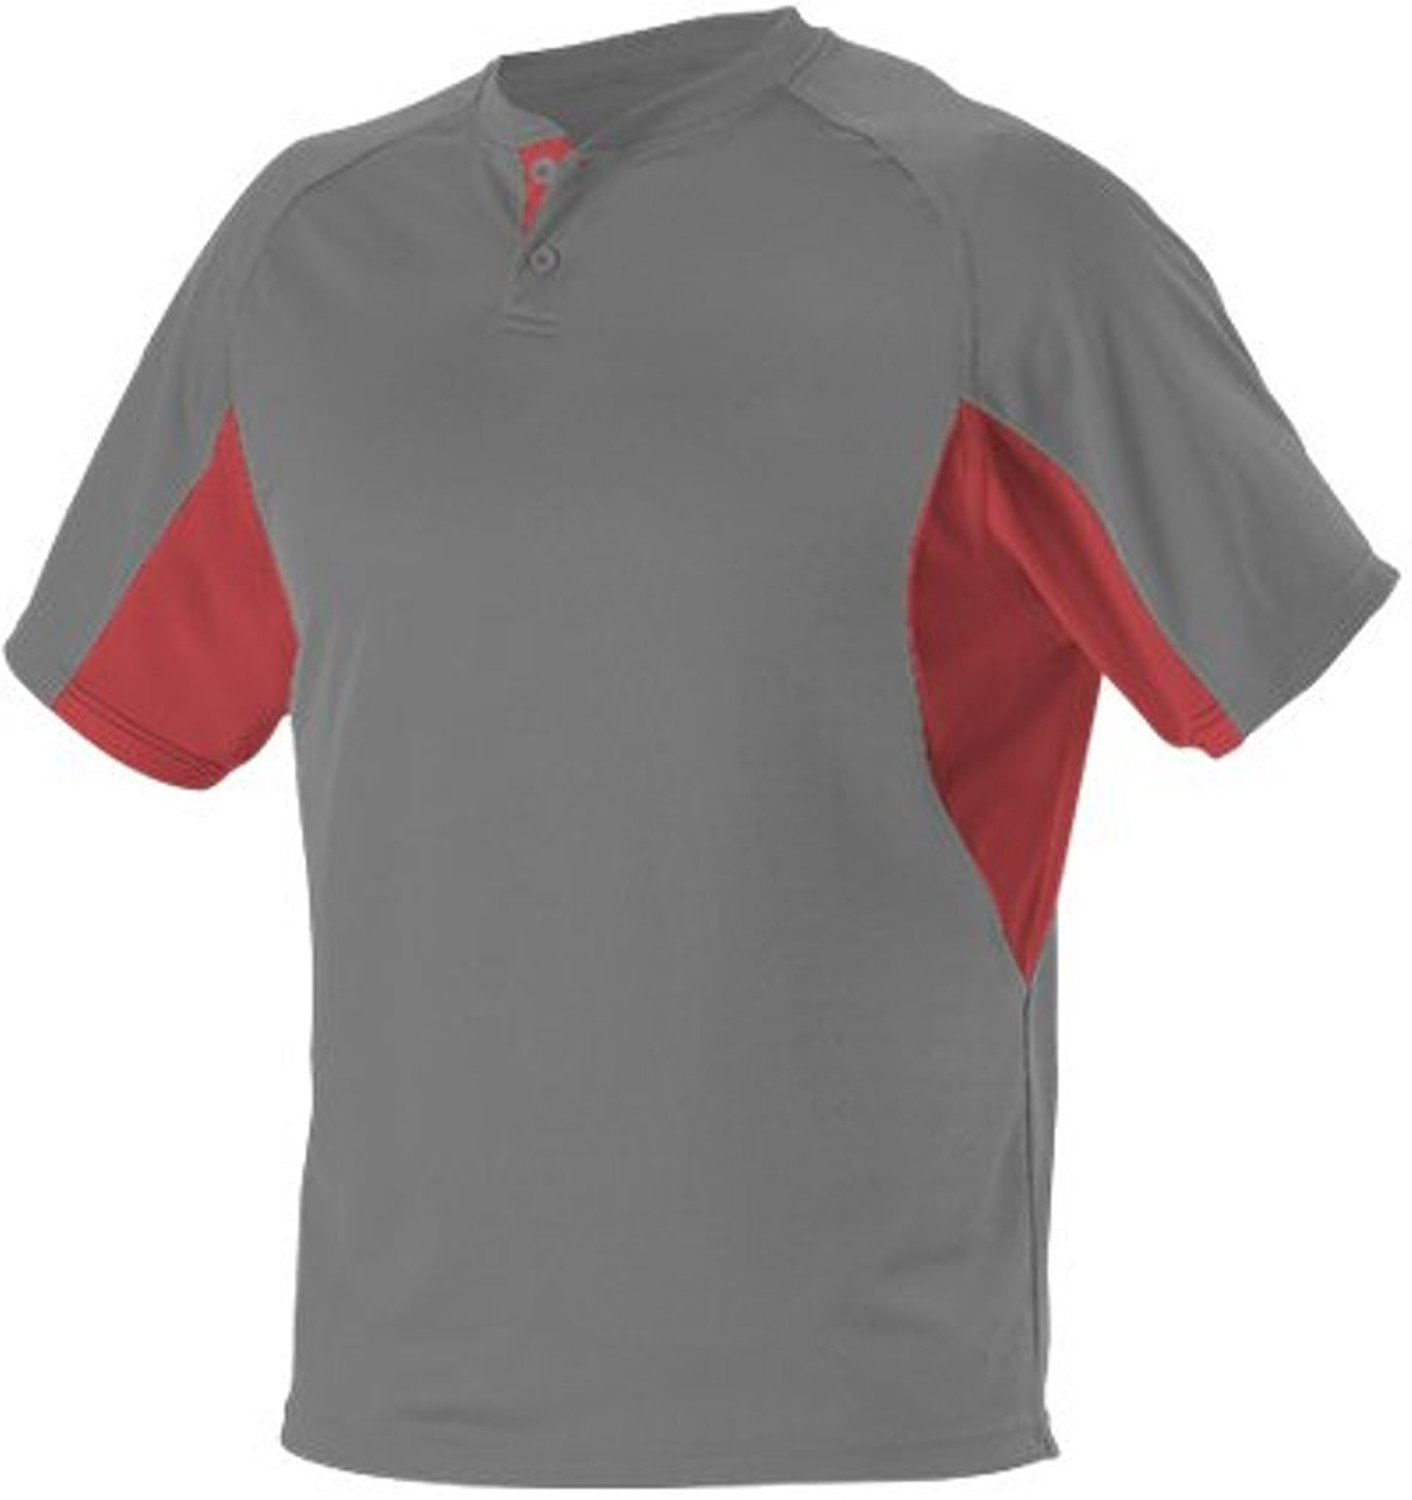 Alleson Baseball Jersey - 2-Button Henley Extreme Mock Mesh - 525Y - Youth Small (S) - Charcoal/Red